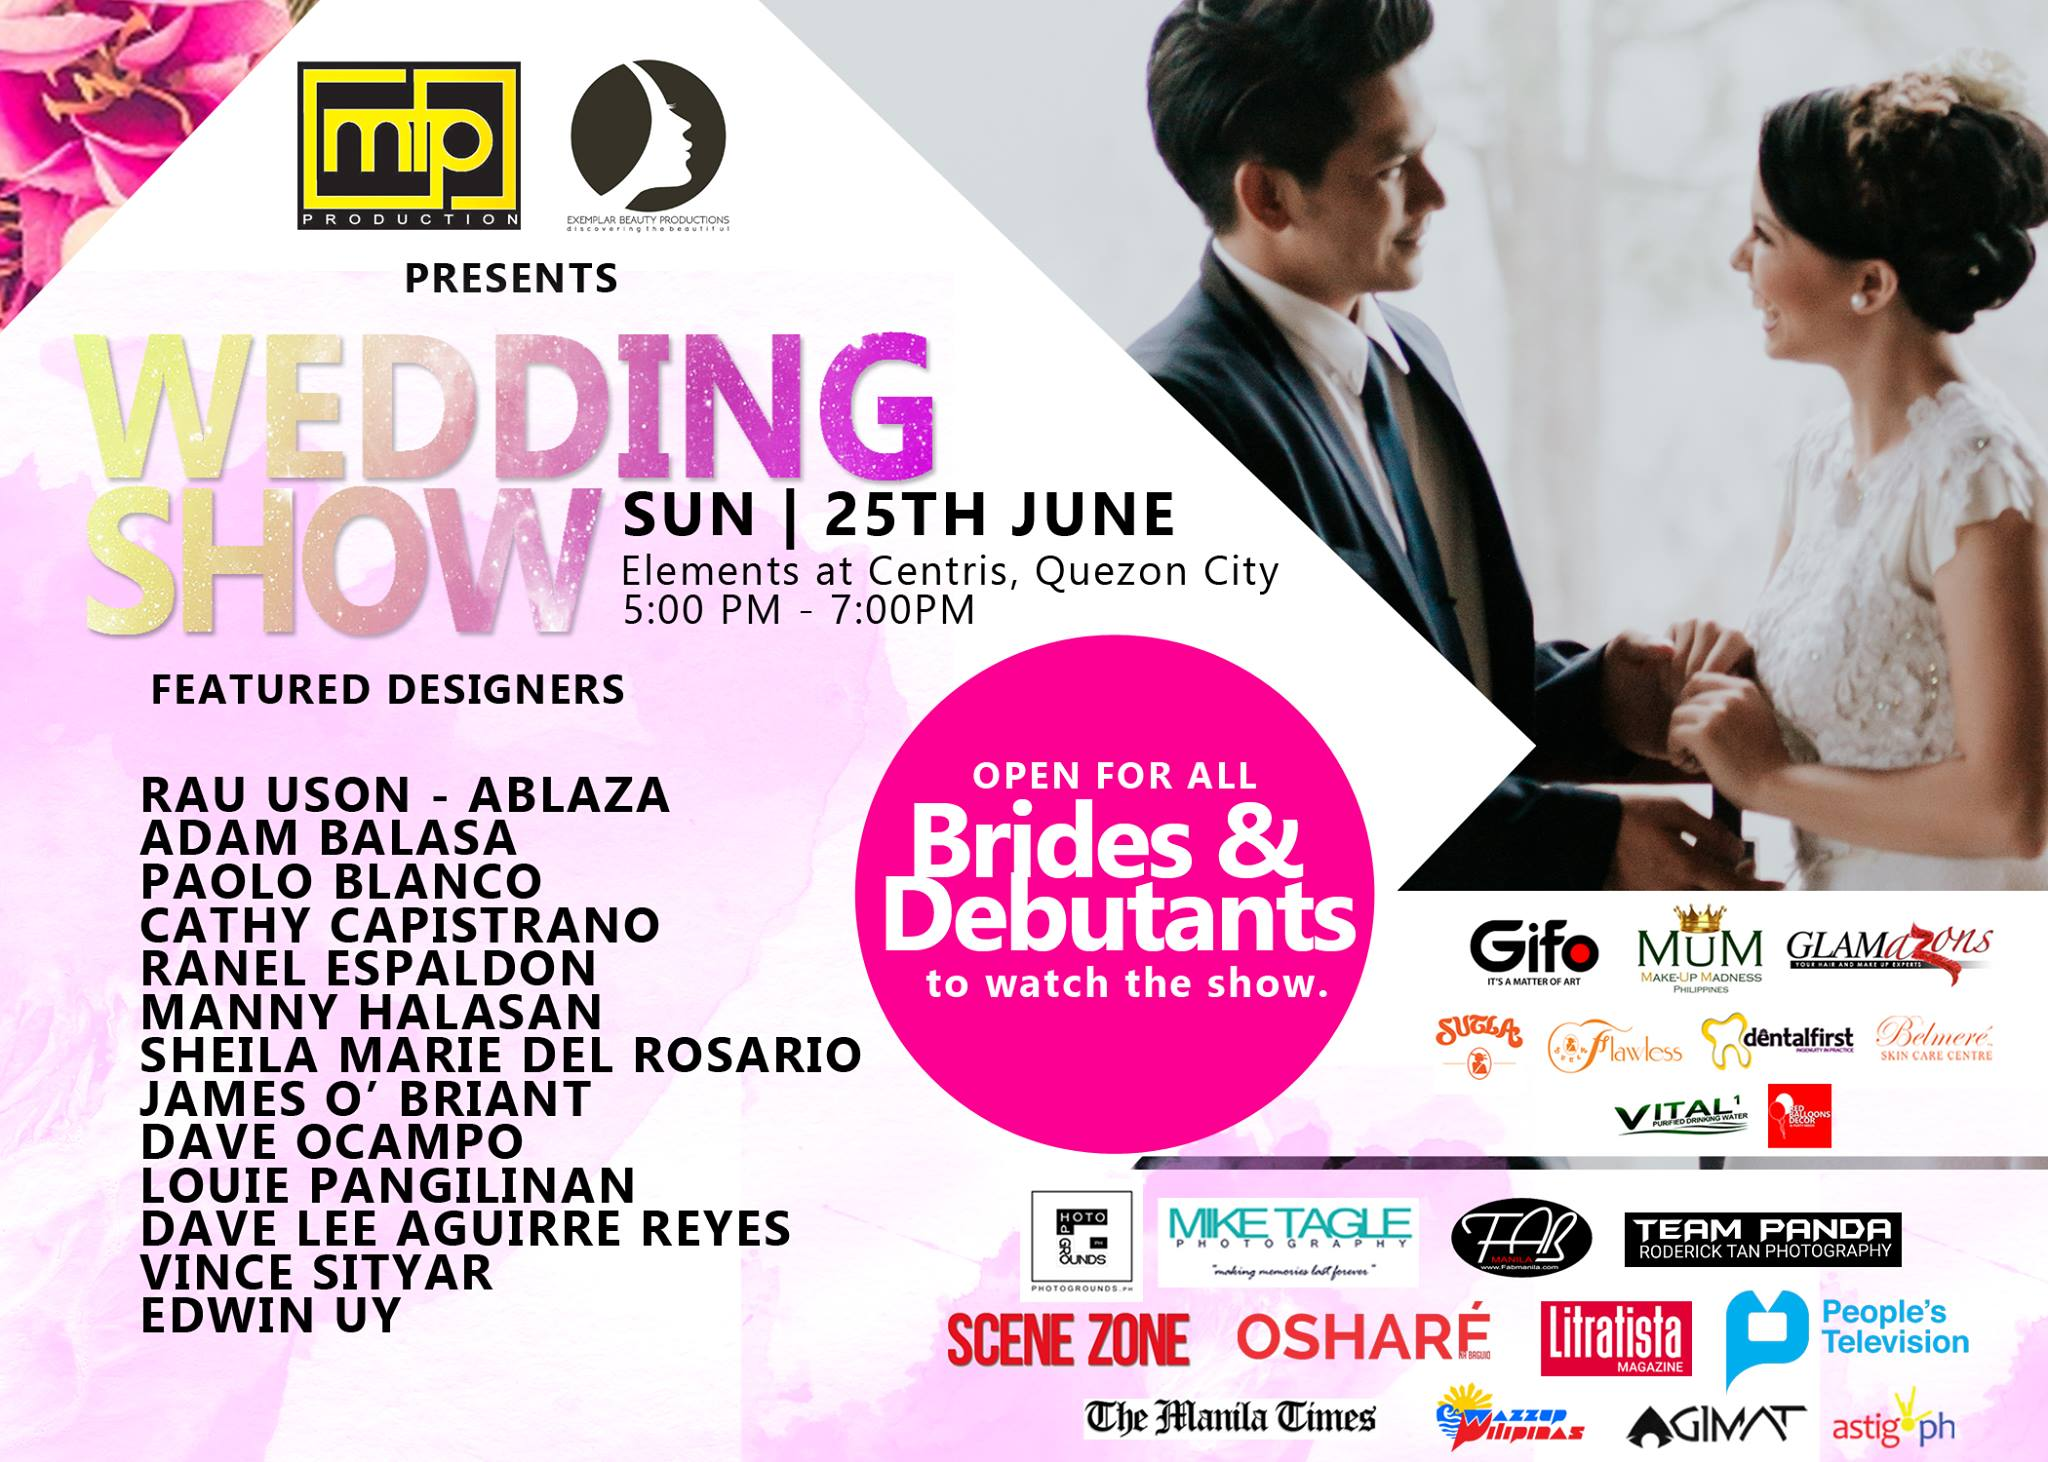 MTP Production Like This Page · June 6 · We are inviting everyone to watch THE FASHION GALA WEDDINGS - 5PM on June 25, 2017 at Elements @ centris, Quezon City. This show is open for everyone specially debutante and brides. 13 Outstanding local and fashion designer will showcase their best collection. Produced by : Mike Tagle Organized by : MTP Production Co-Presented by : Exemplar Beauty Production special thanks to : Dave Ocampo #TFGweddings #FashionShow #MTPproduction — with Team Panda, Patrene Jane Acuin, Mike Tagle Photography, Belmere Skin Care Centre, Vital Purified Drinking Water, Scene Zone, Litratista.ph, Photogrounds.ph, GifoStore Philippines, Osharé Na Baguio Page, Dental First, Inc., Glamazons and Fabmanilaph.